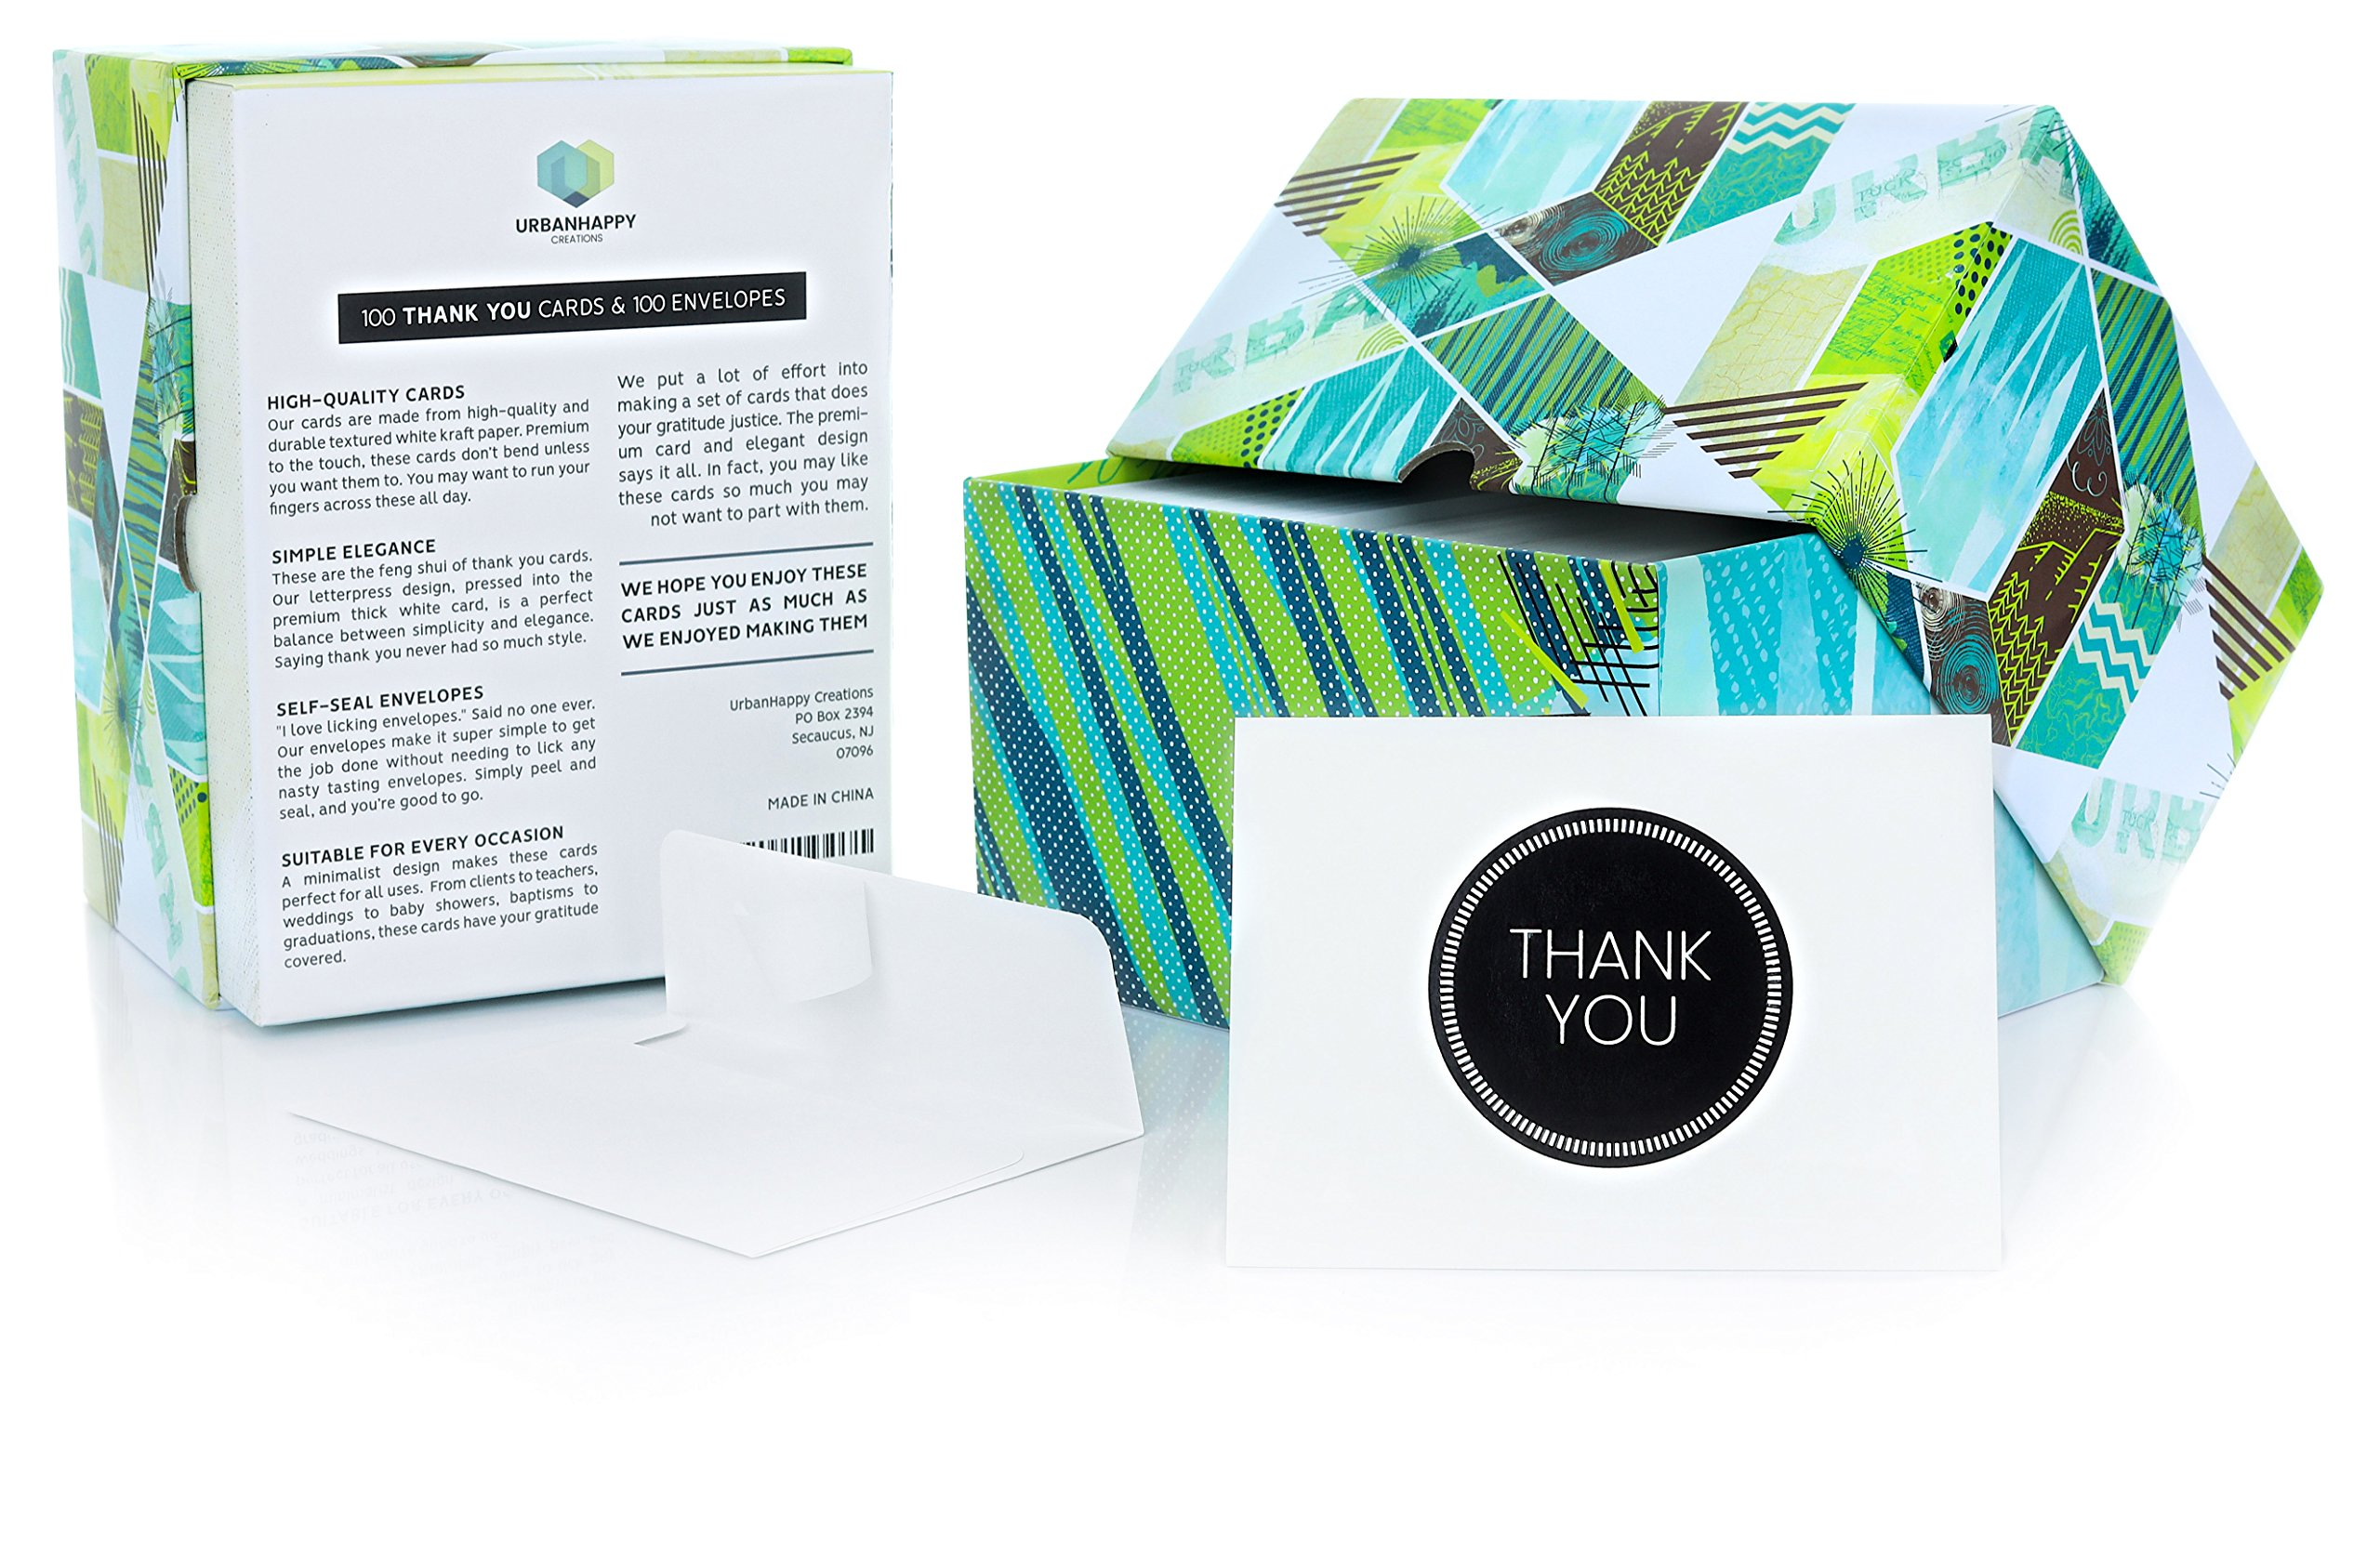 100 Bulk Thank You Cards with Self-Seal Envelopes | Letterpress Printing, Thick Premium Textured Paper | Professional Thank You Notes Perfect for Weddings, Business, Teachers or Graduations